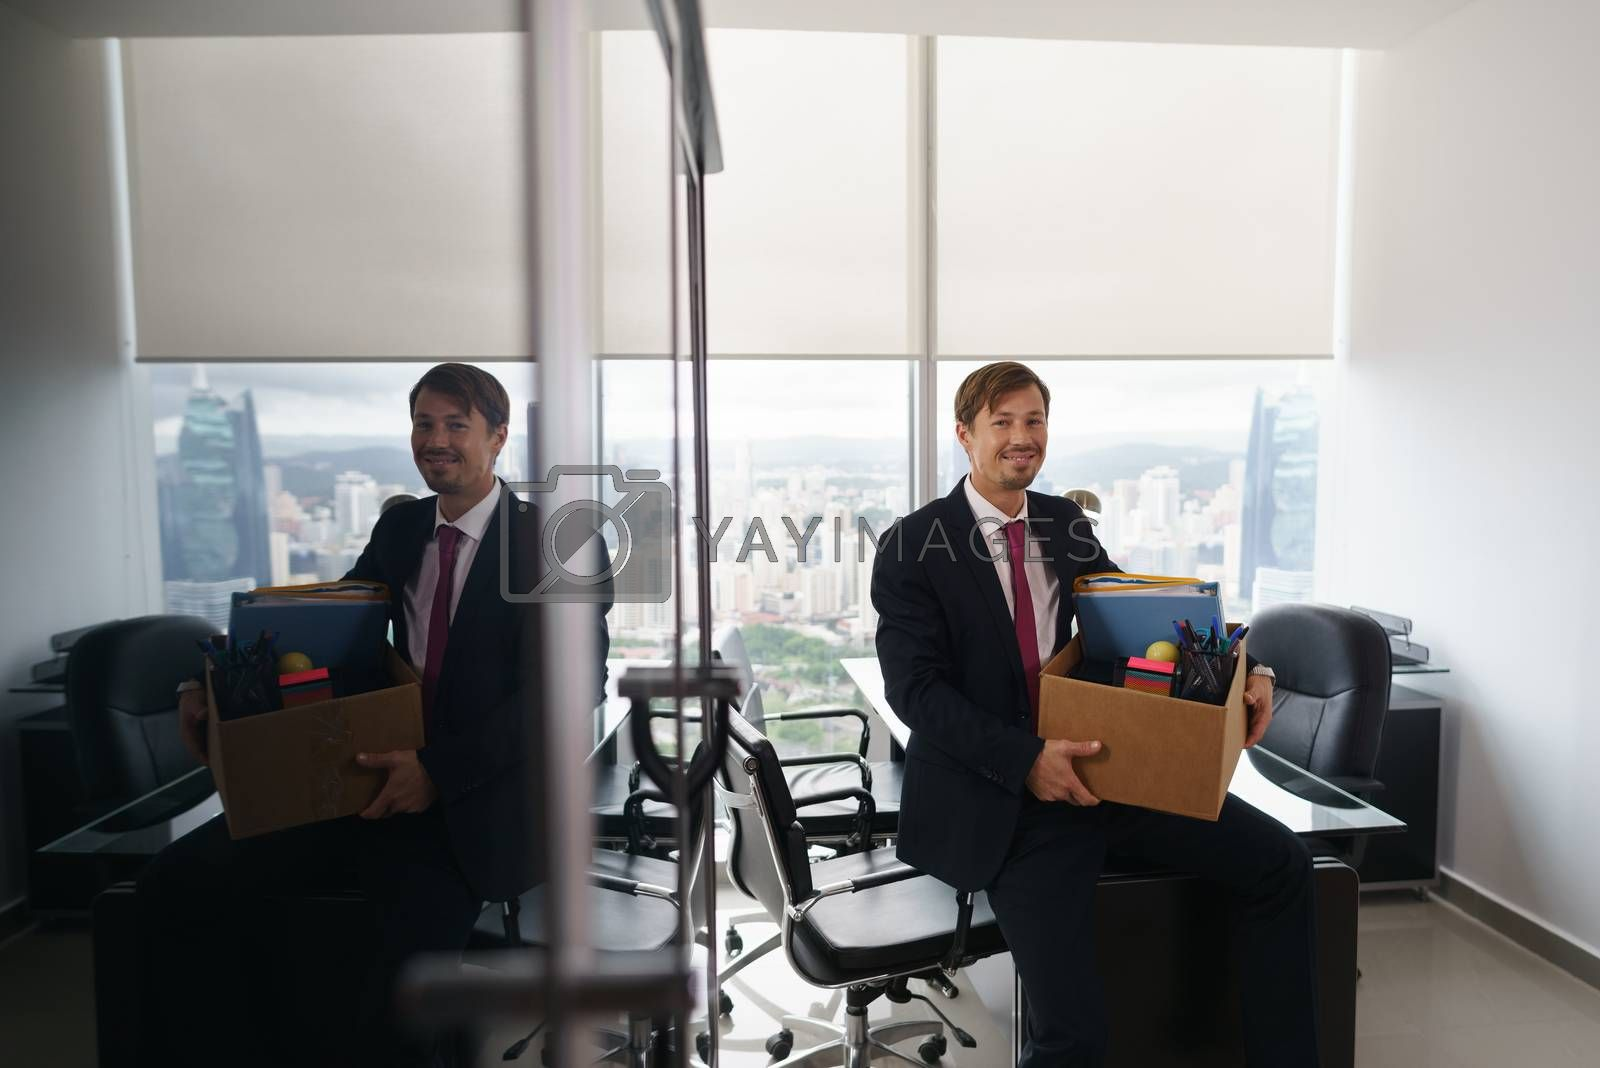 Businessman recently hired for corporate job moves into his new executive office with a view of the city. He leans on desk and smiles at camera happy.